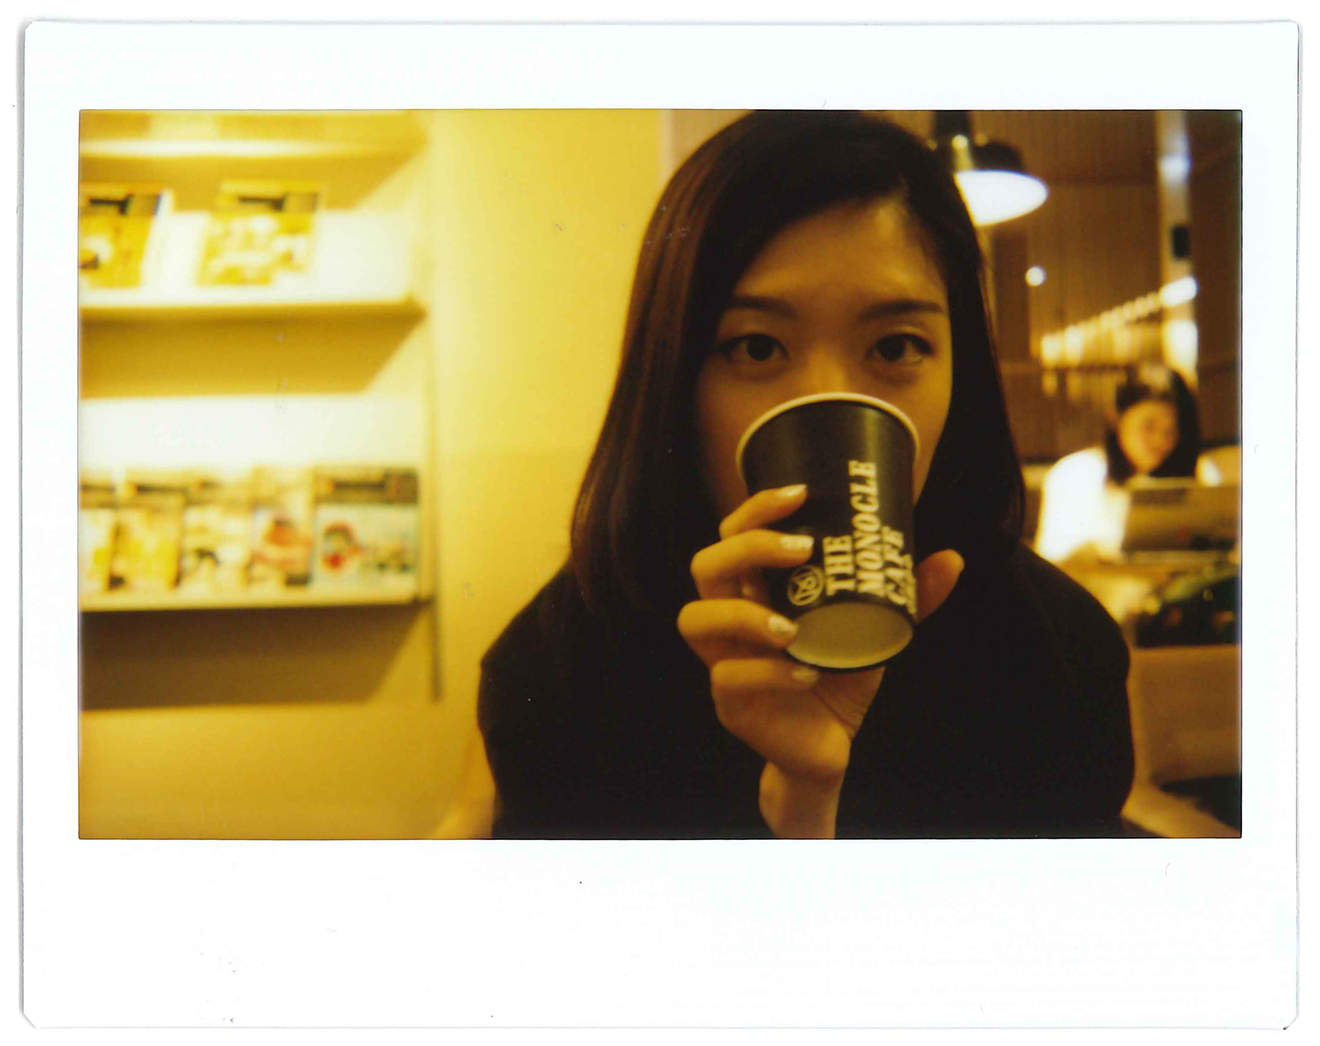 """Instant photo for Day 69 of """"A Year in an Instant"""" by Nuno Coelho Santos"""